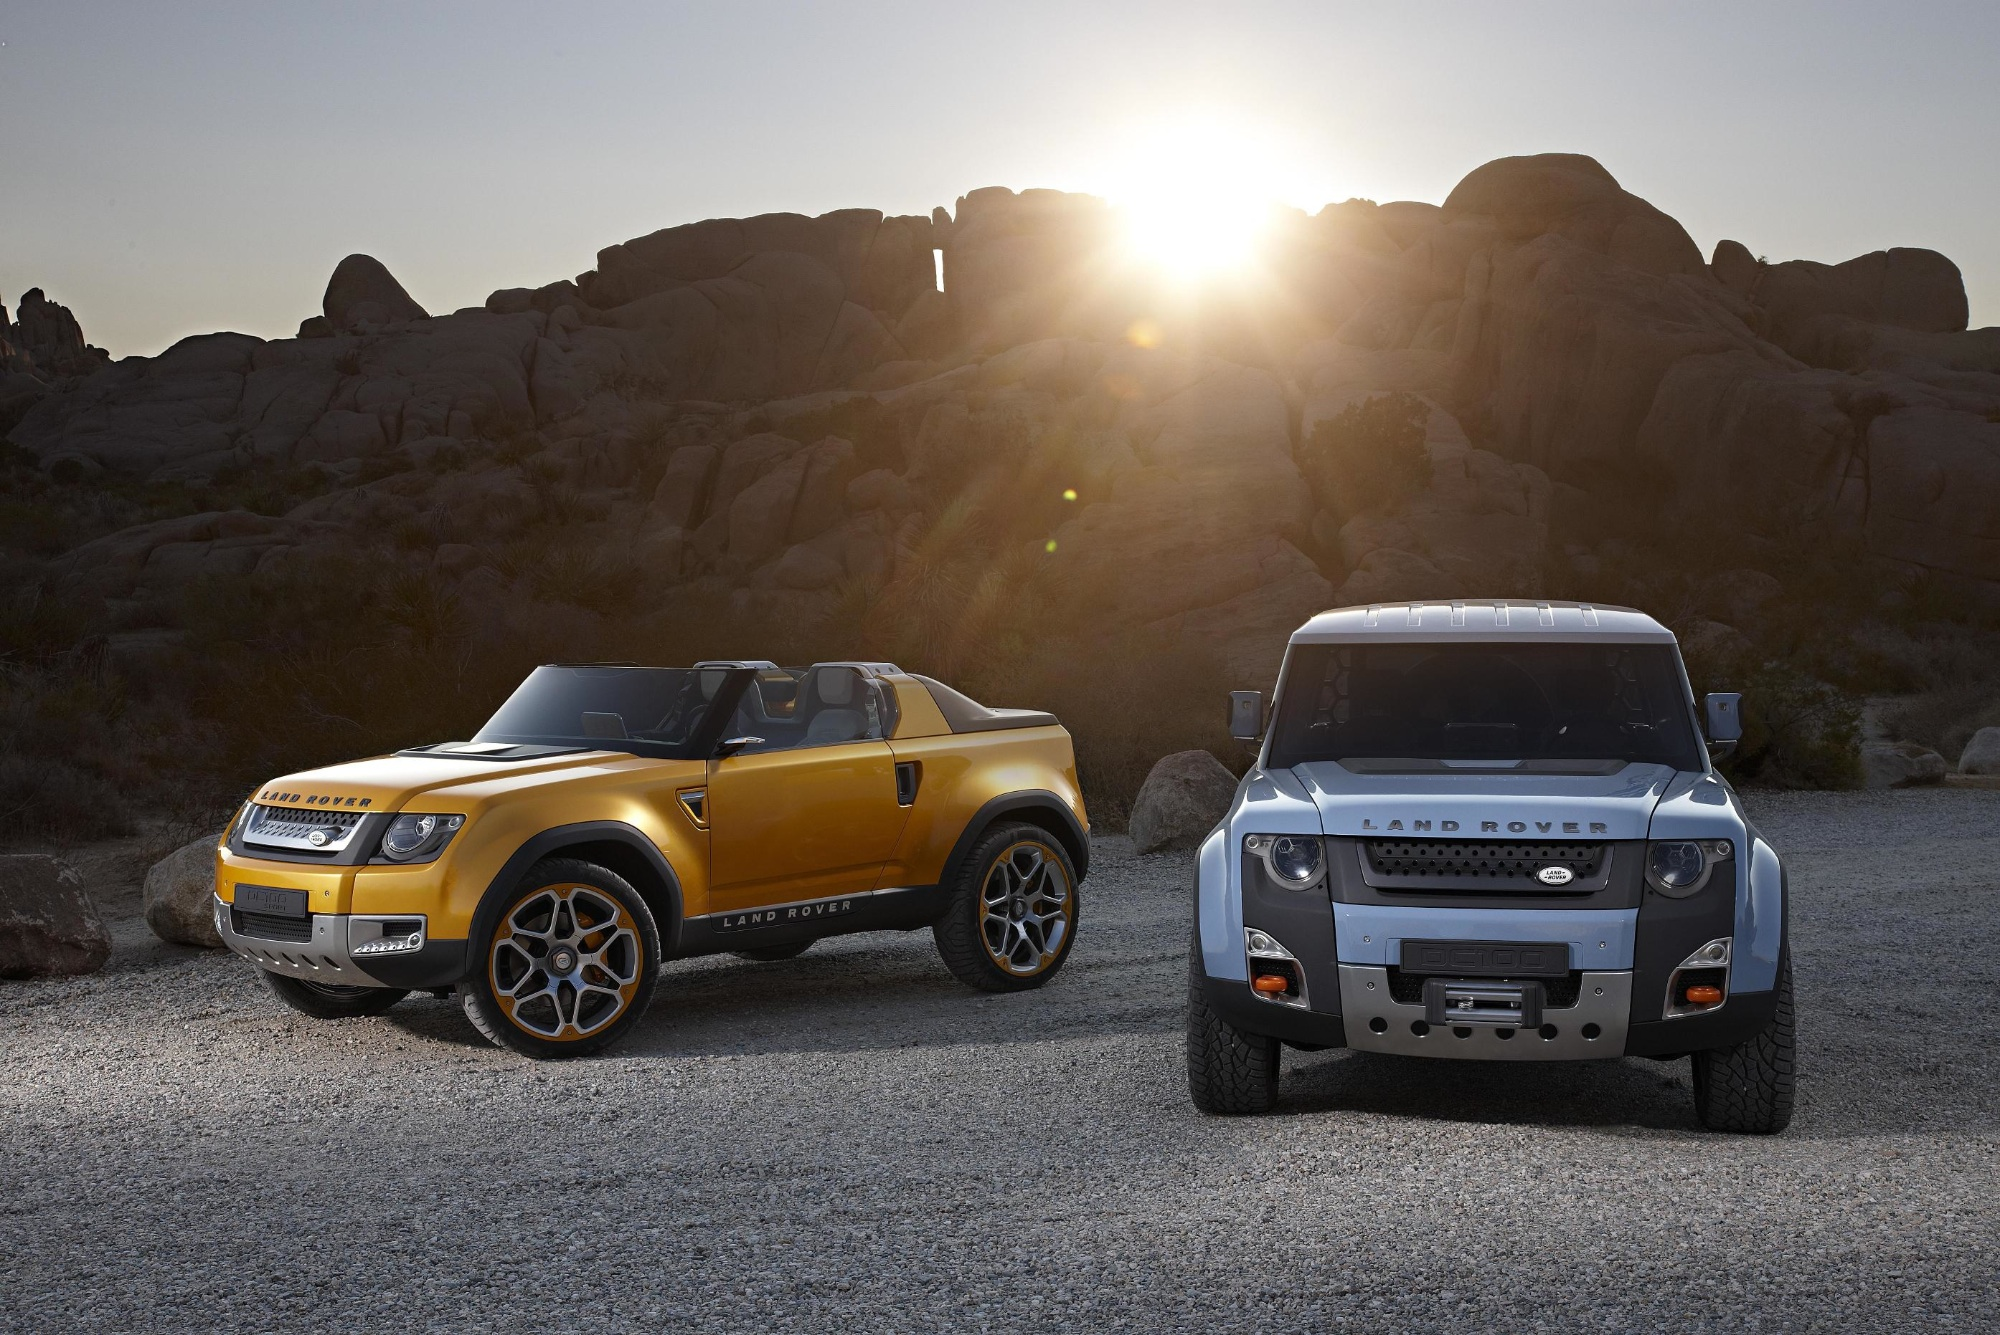 Land Rover DC100 and DC100 Sport Ready for Los Angeles autoevolution